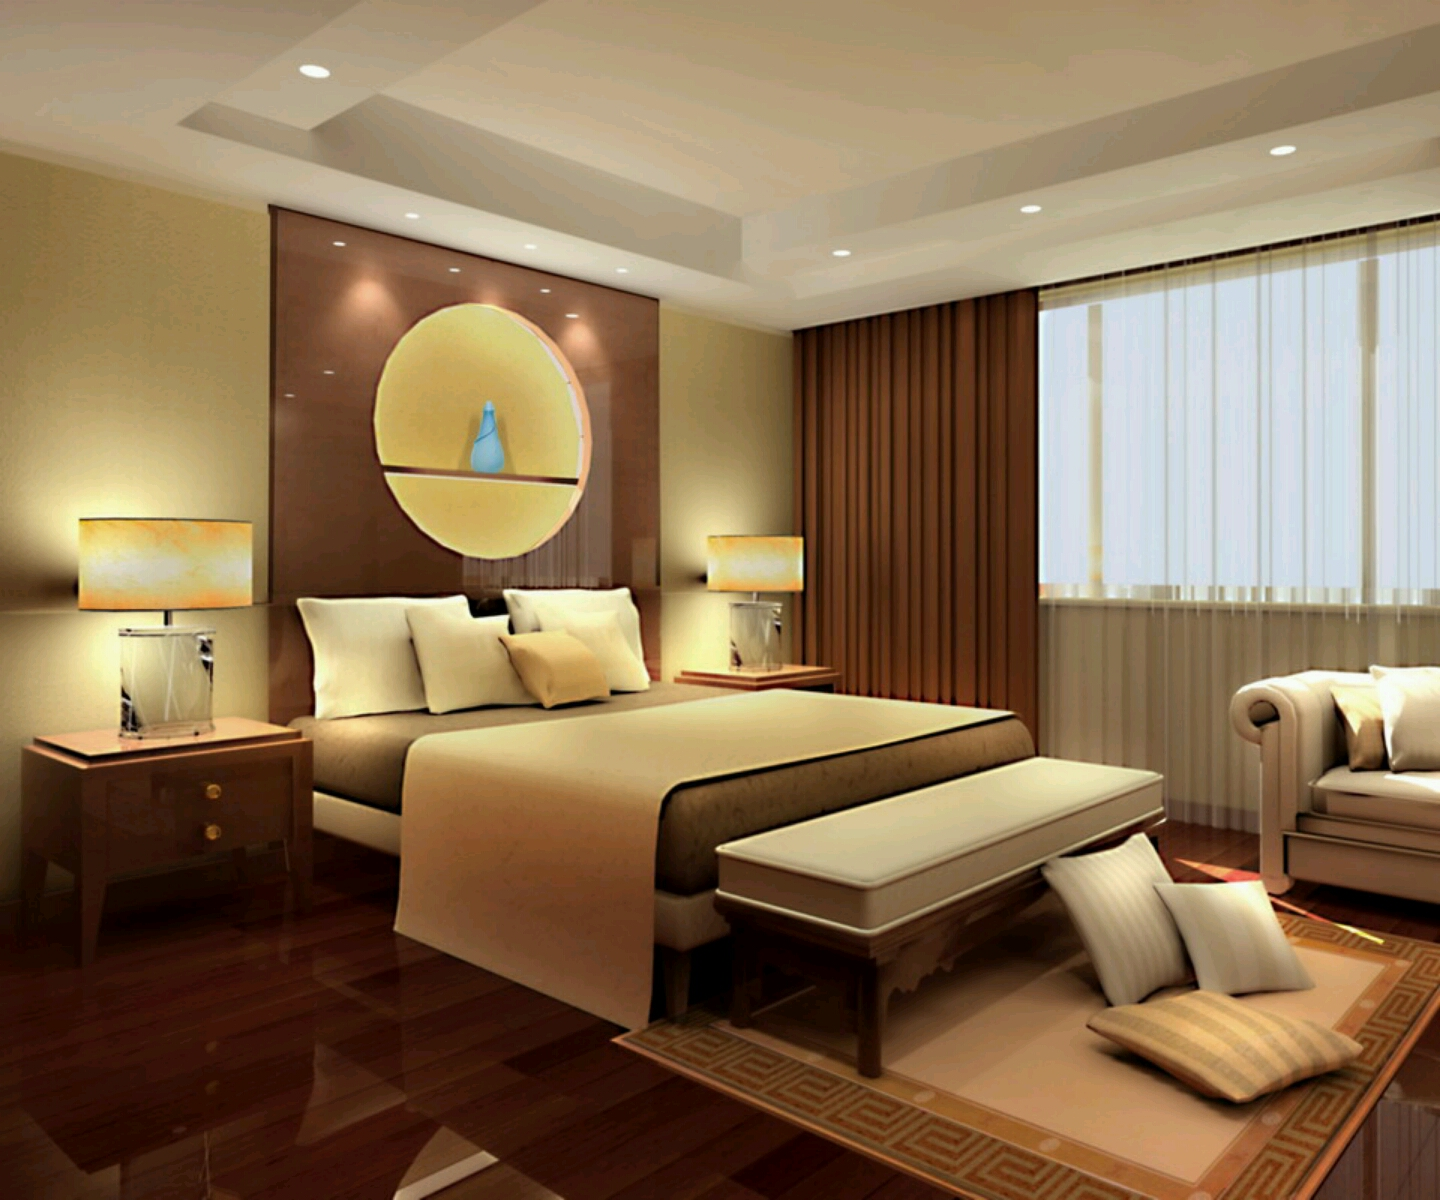 New home designs latest modern beautiful bedrooms for Bedroom interior designs gallery